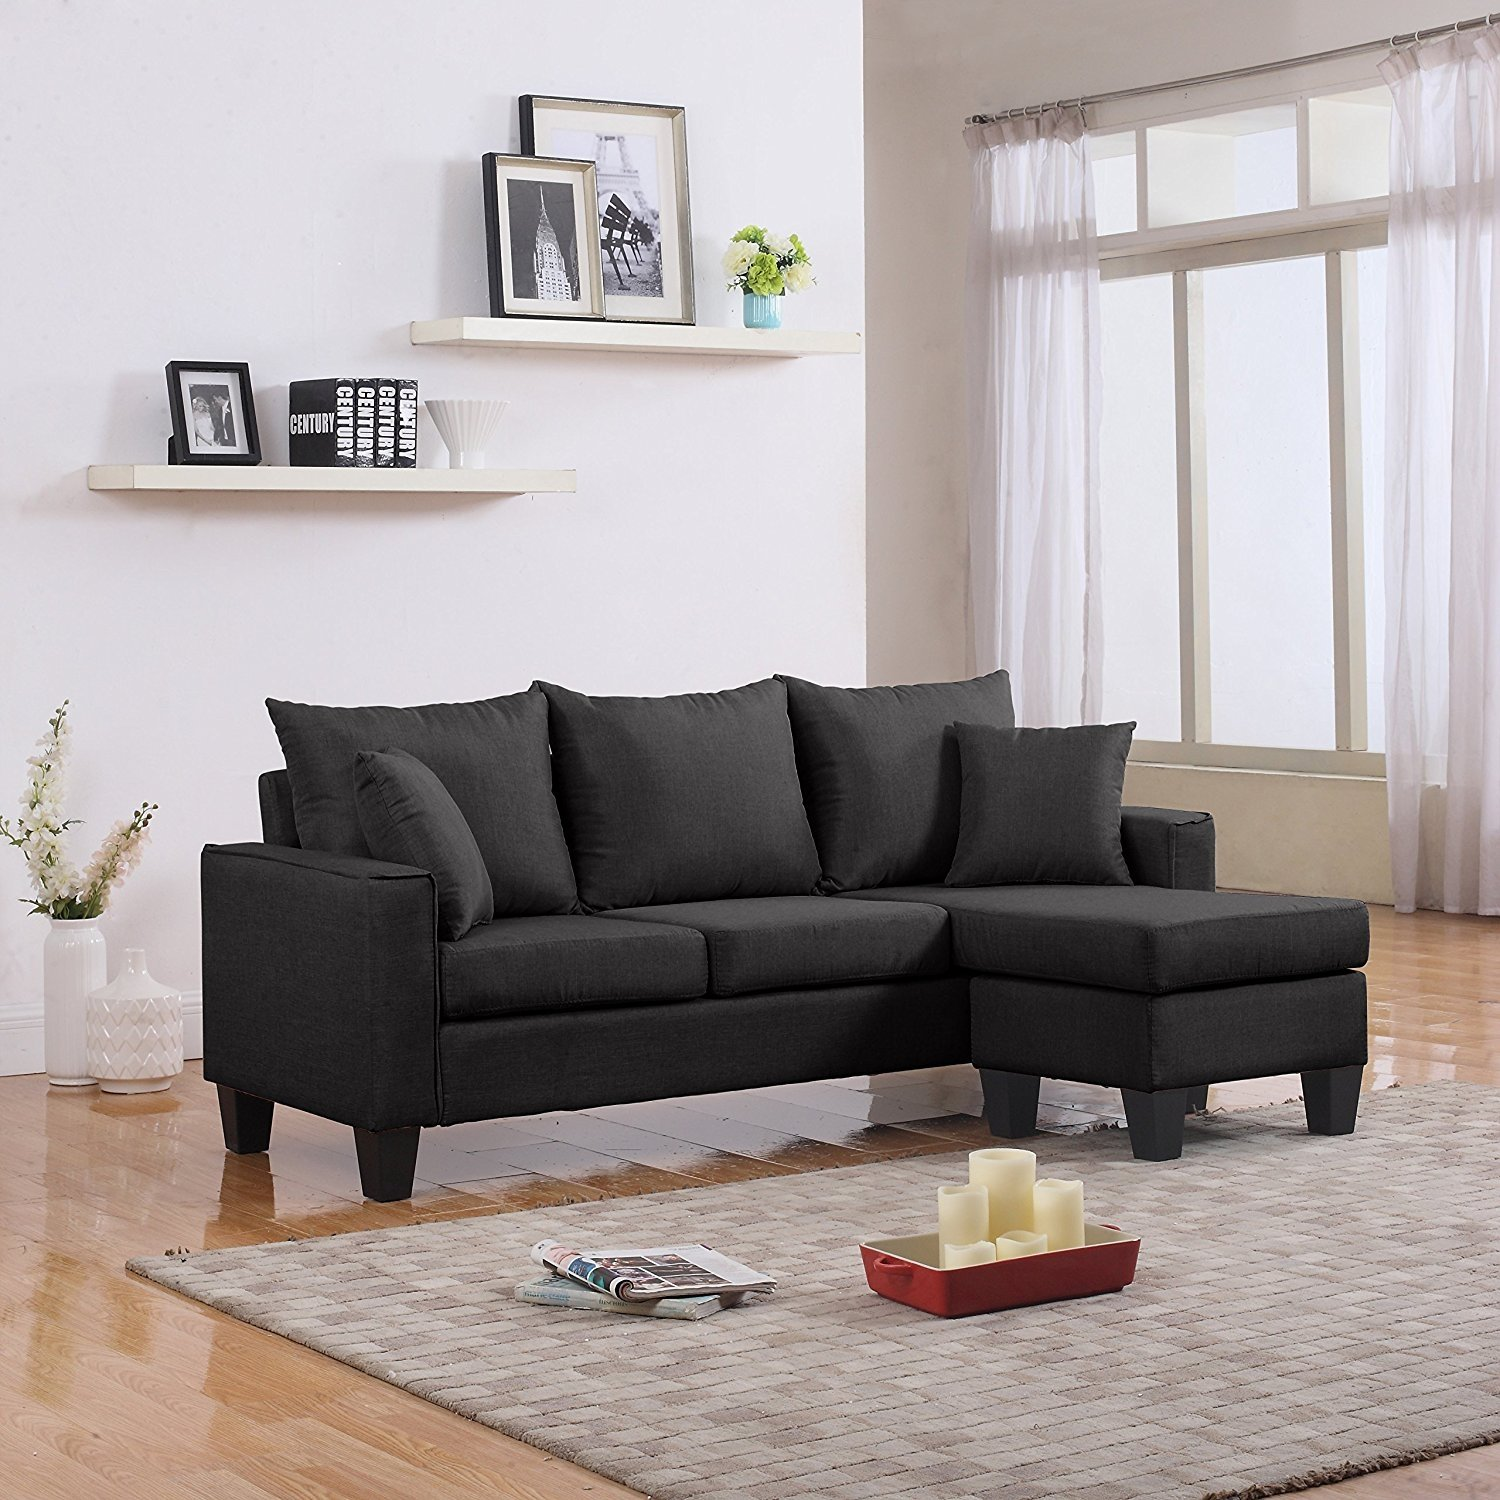 Miraculous Details About Modern Linen Fabric Small Space Sectional Sofa With Reversible Chaise Dark Grey Short Links Chair Design For Home Short Linksinfo